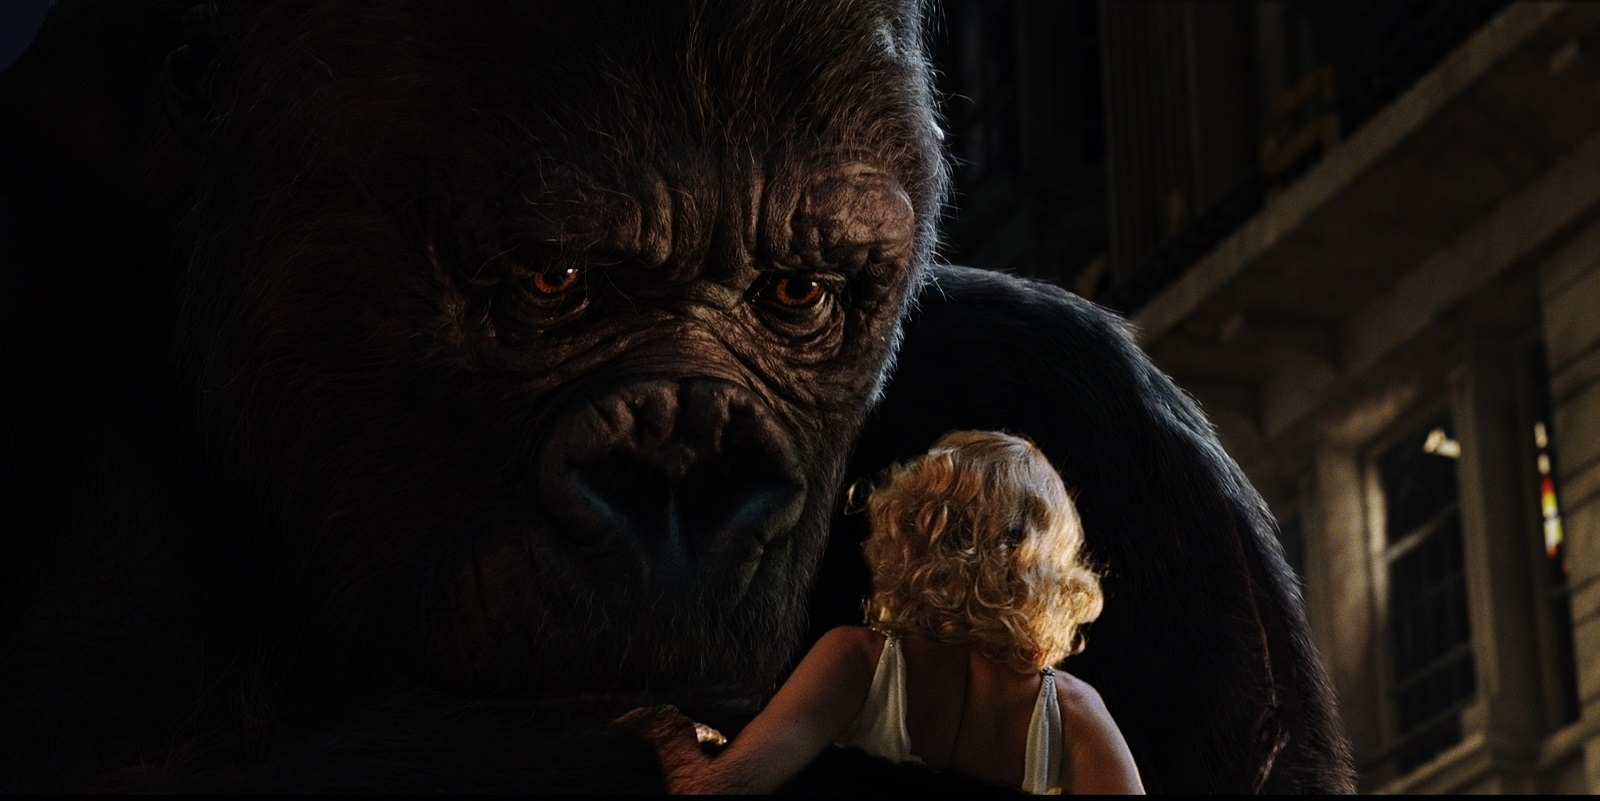 Kong discovers Ann Darrow (Naomi Watts), following his escape from captivity and rampage through the streets of New York City.  'King Kong' will be released in theaters on December 14, 2005.